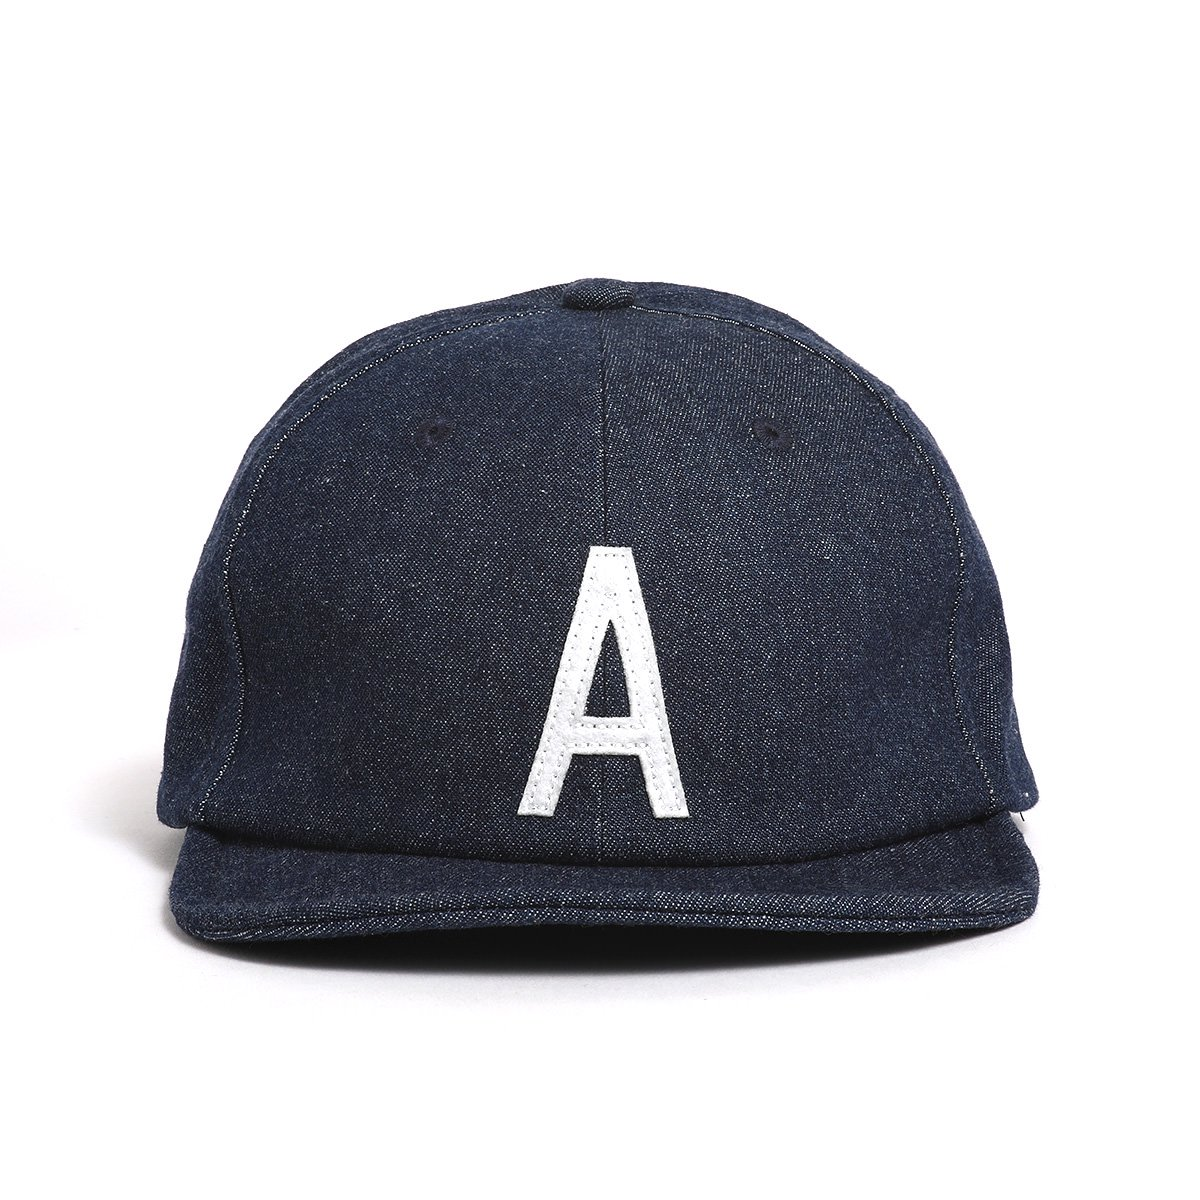 AtoZ Denim Logo CAP 詳細画像1